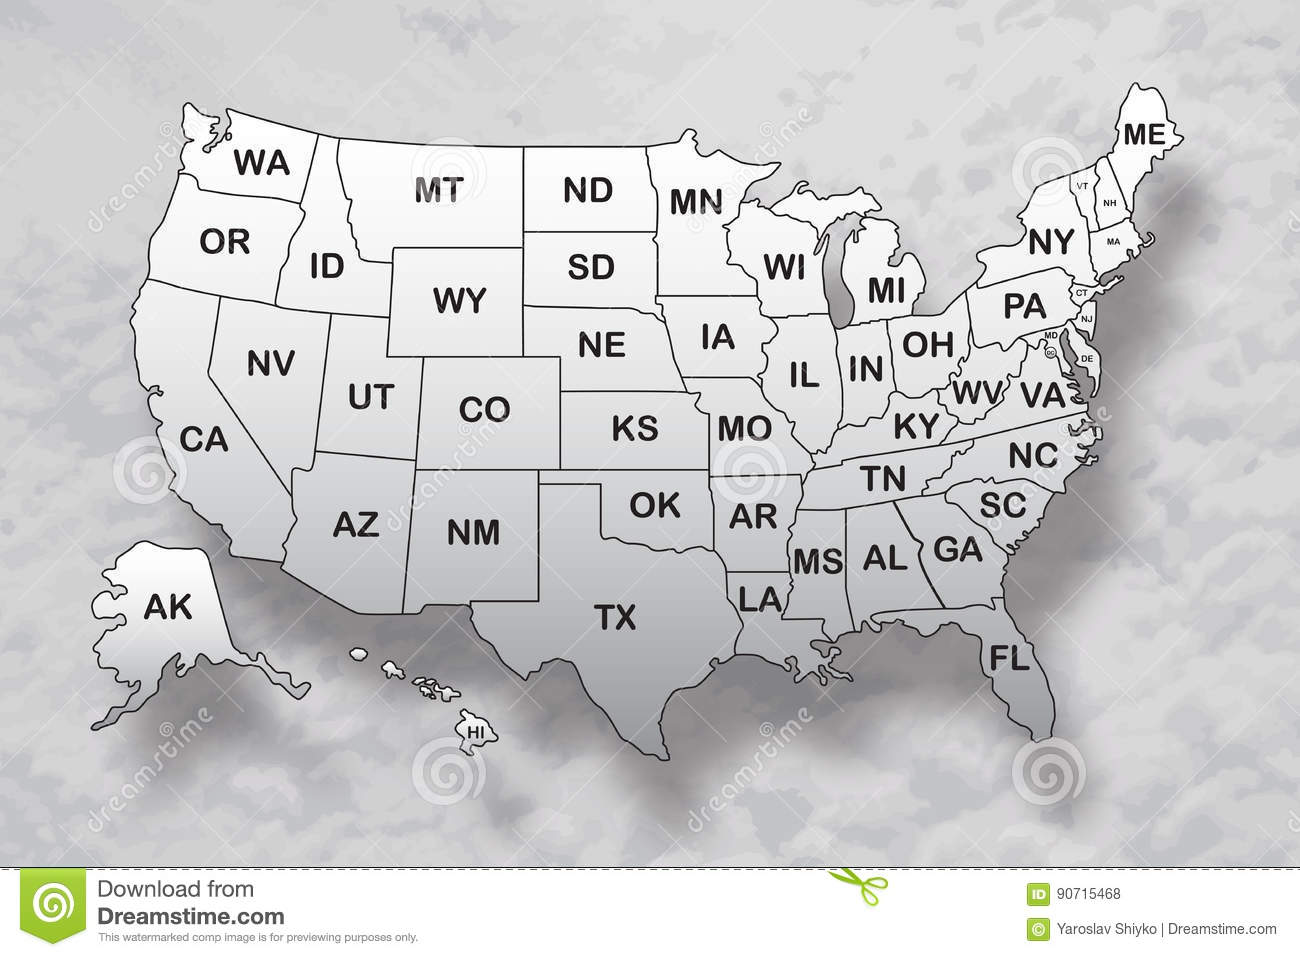 Map Of The United States Of America With Names.Poster Map Of United States Of America With State Names And Shadow